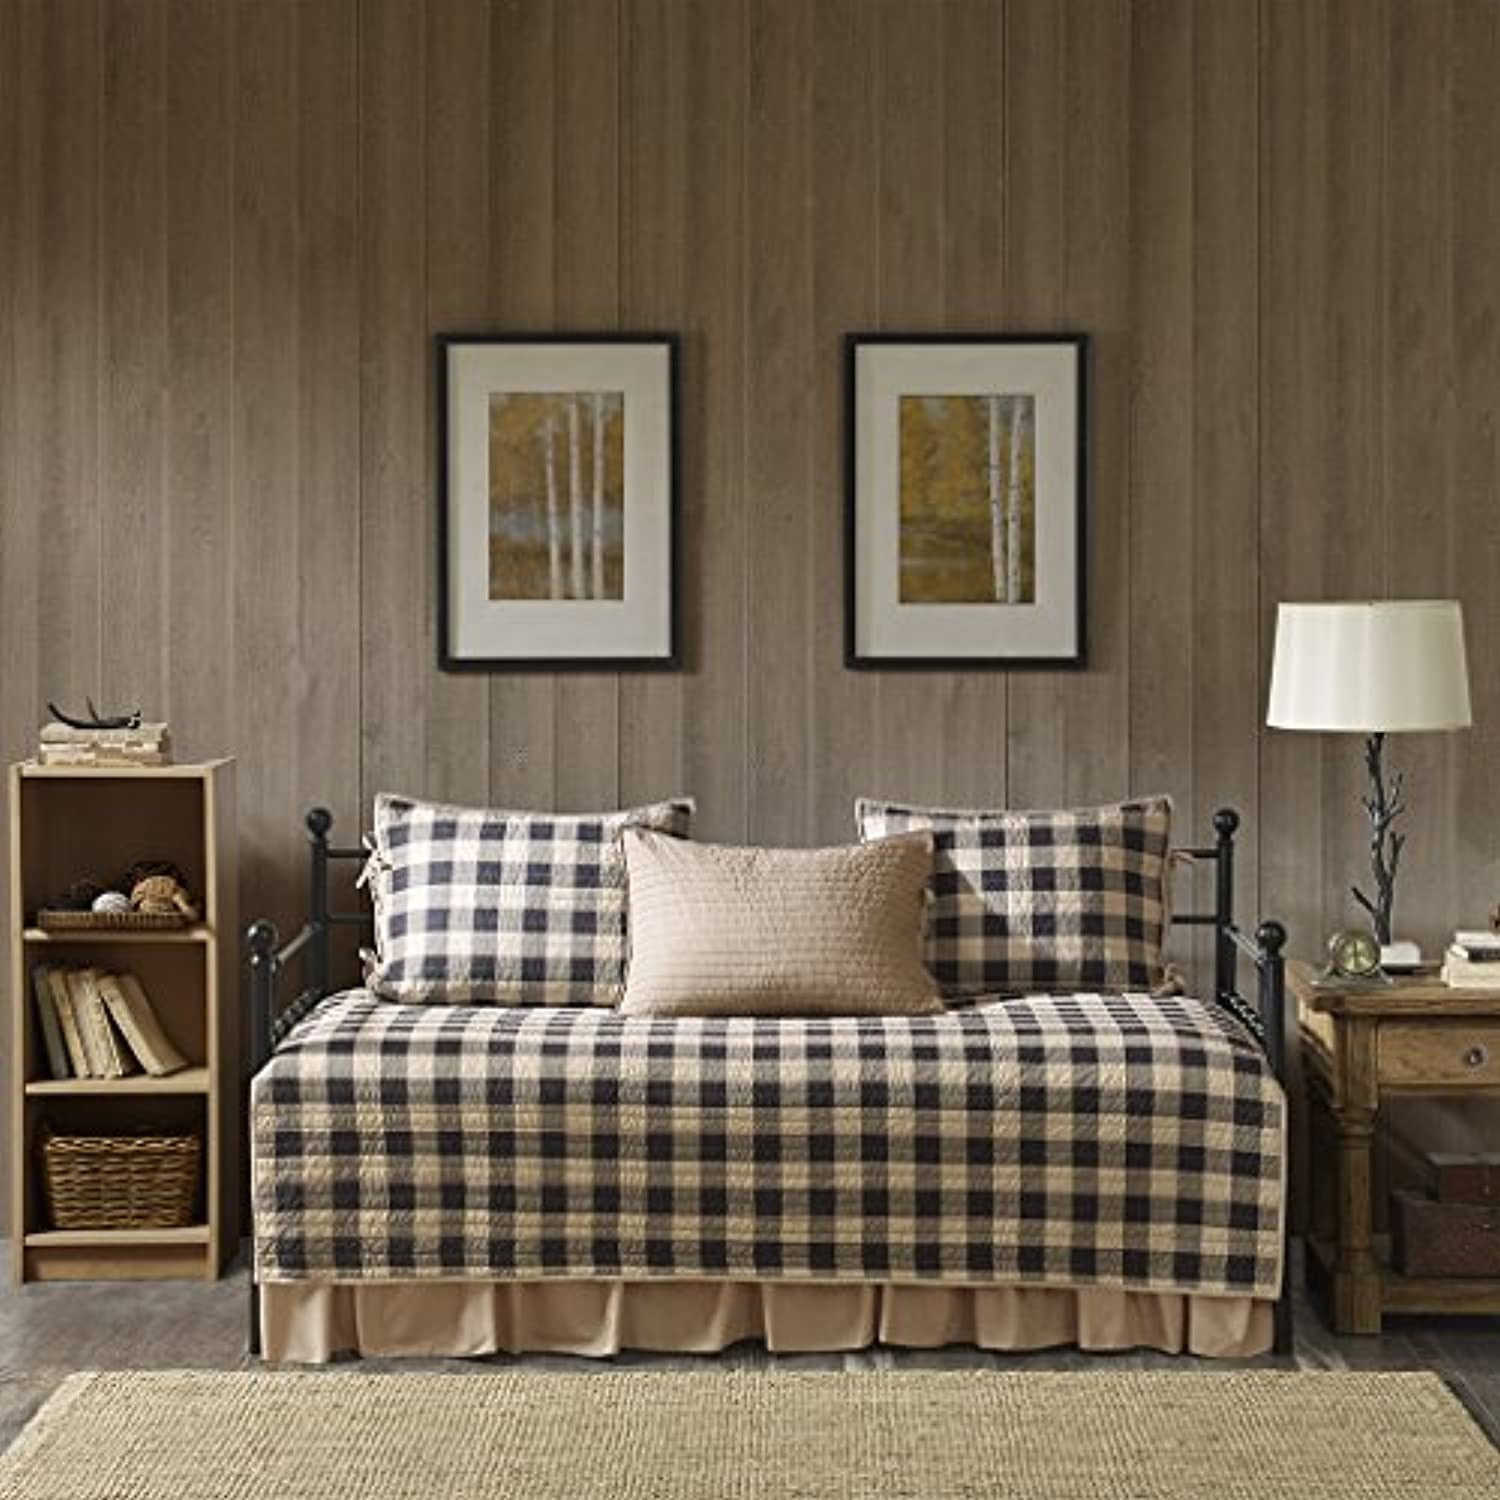 Woolrich Buffalo Check 5 Piece Dayベッドカバーセット Daybed ブラウン